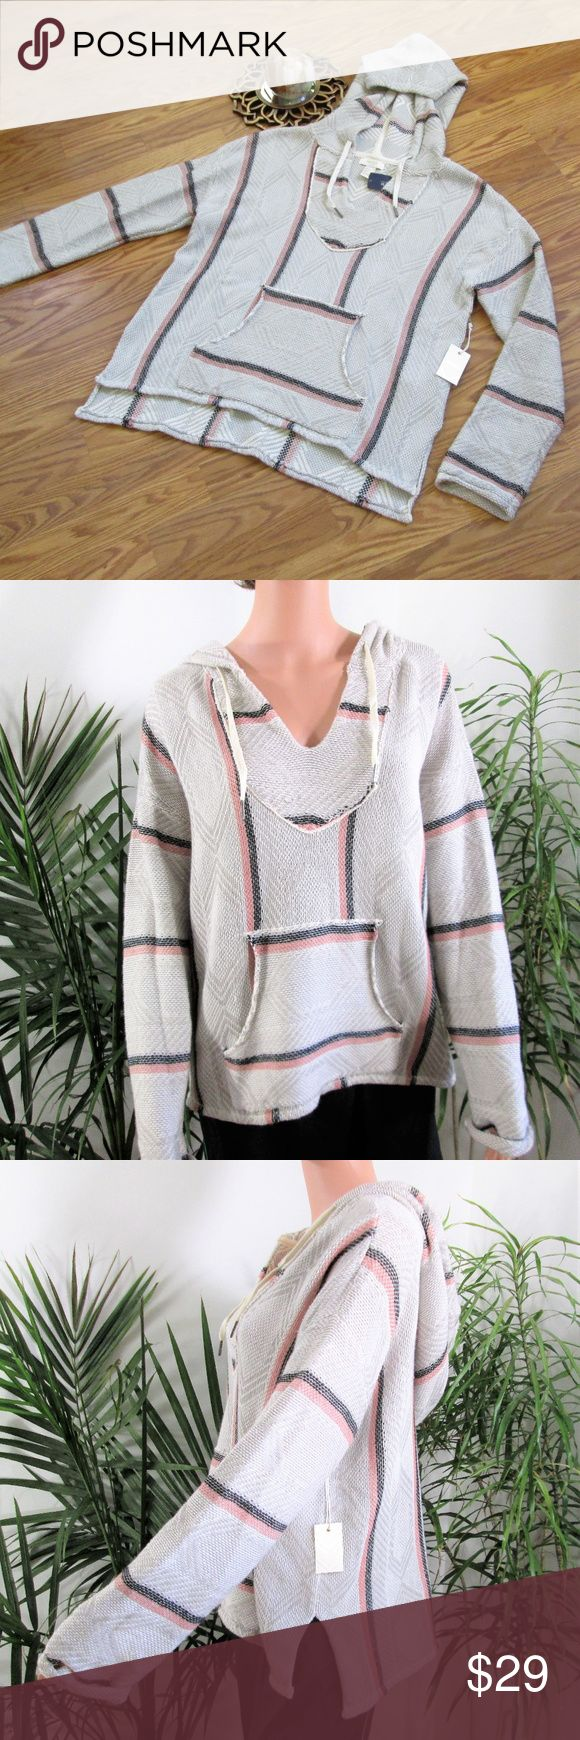 "NEW! F21 Baja Pullover Hoodie Super soft knit hoodie is cream/gray with black/coral design. Tie hood, kangaroo pocket, slight hi - lo hemline. Cotton acrylic blend.  Measured flat. 21"" pit to pit. 23"" long front. 26"" long back.  on 5' 9'' model, 33'' x 24'' x 33.5''. Forever 21 Tops Sweatshirts & Hoodies"